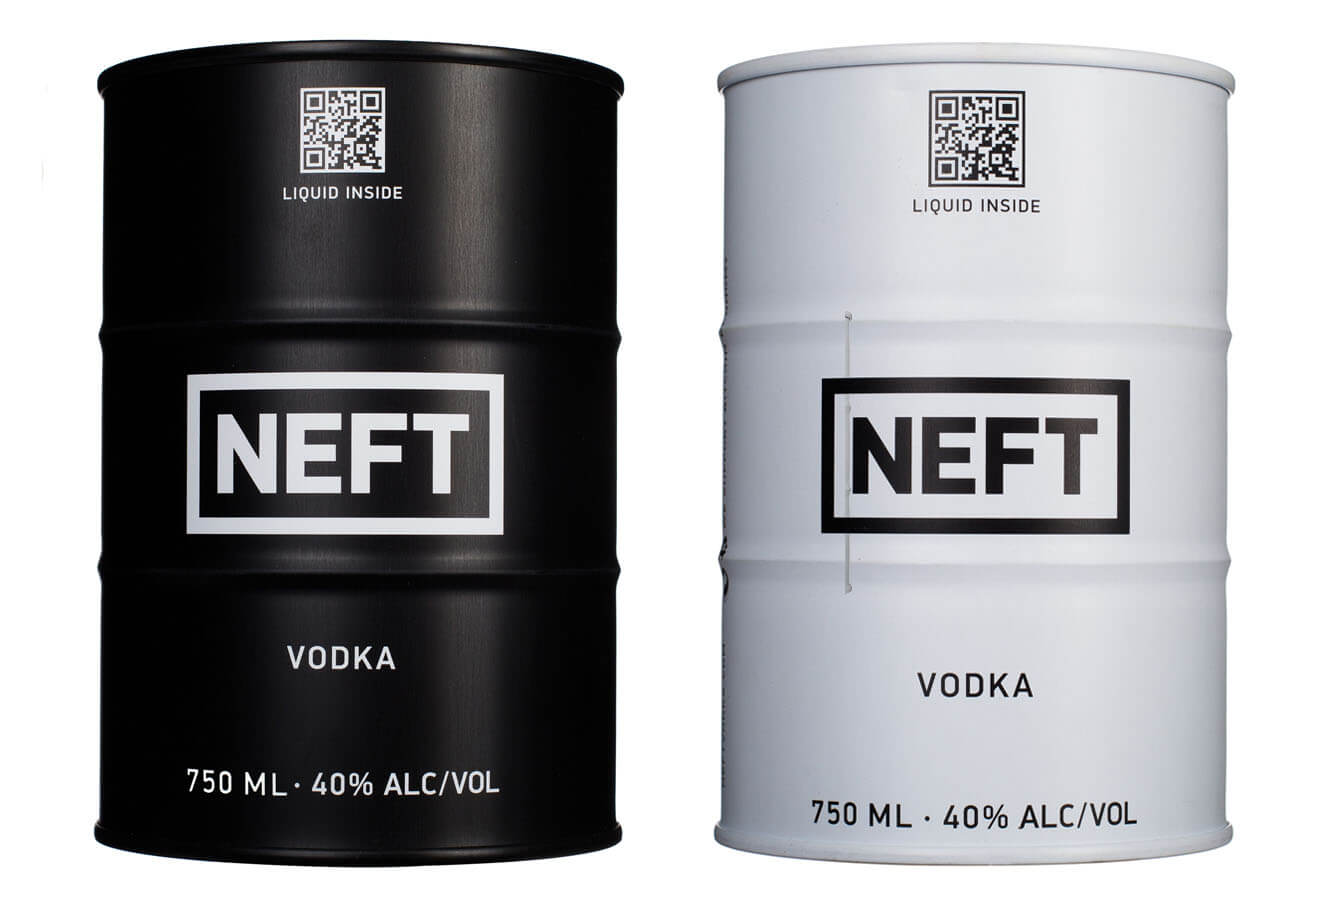 Neft Vodka Barrels, on white background